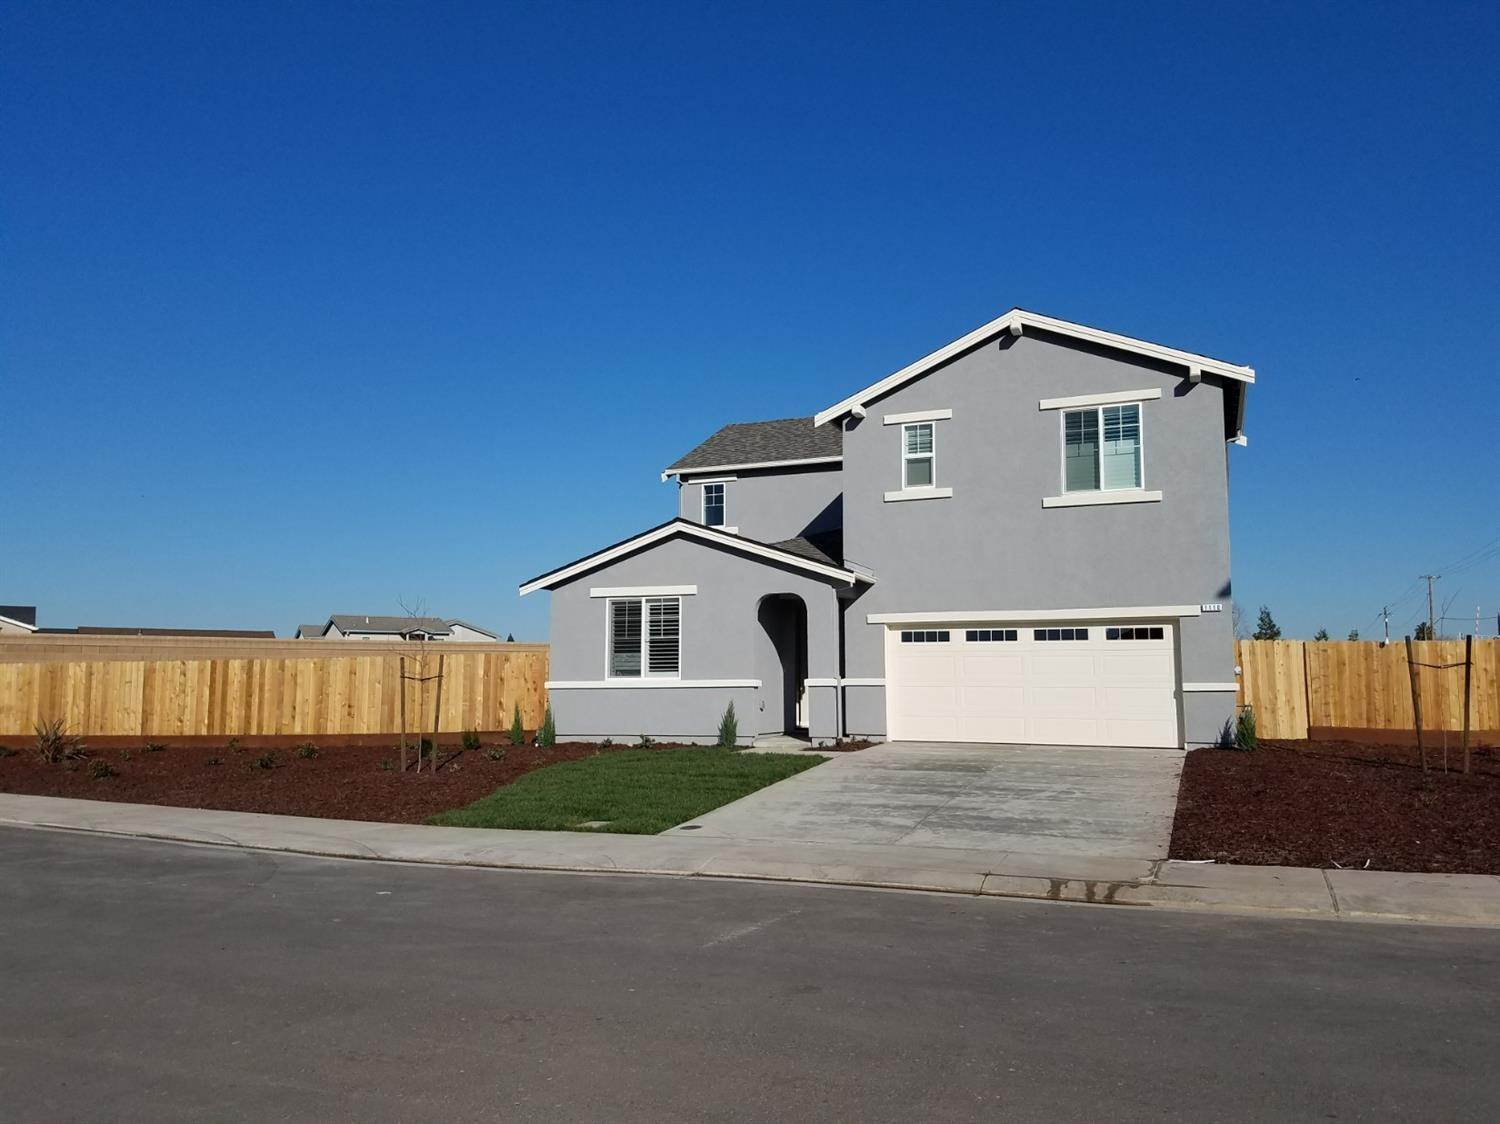 Single Family Homes for Active at 1110 Vesuvio Street Manteca, California 95337 United States